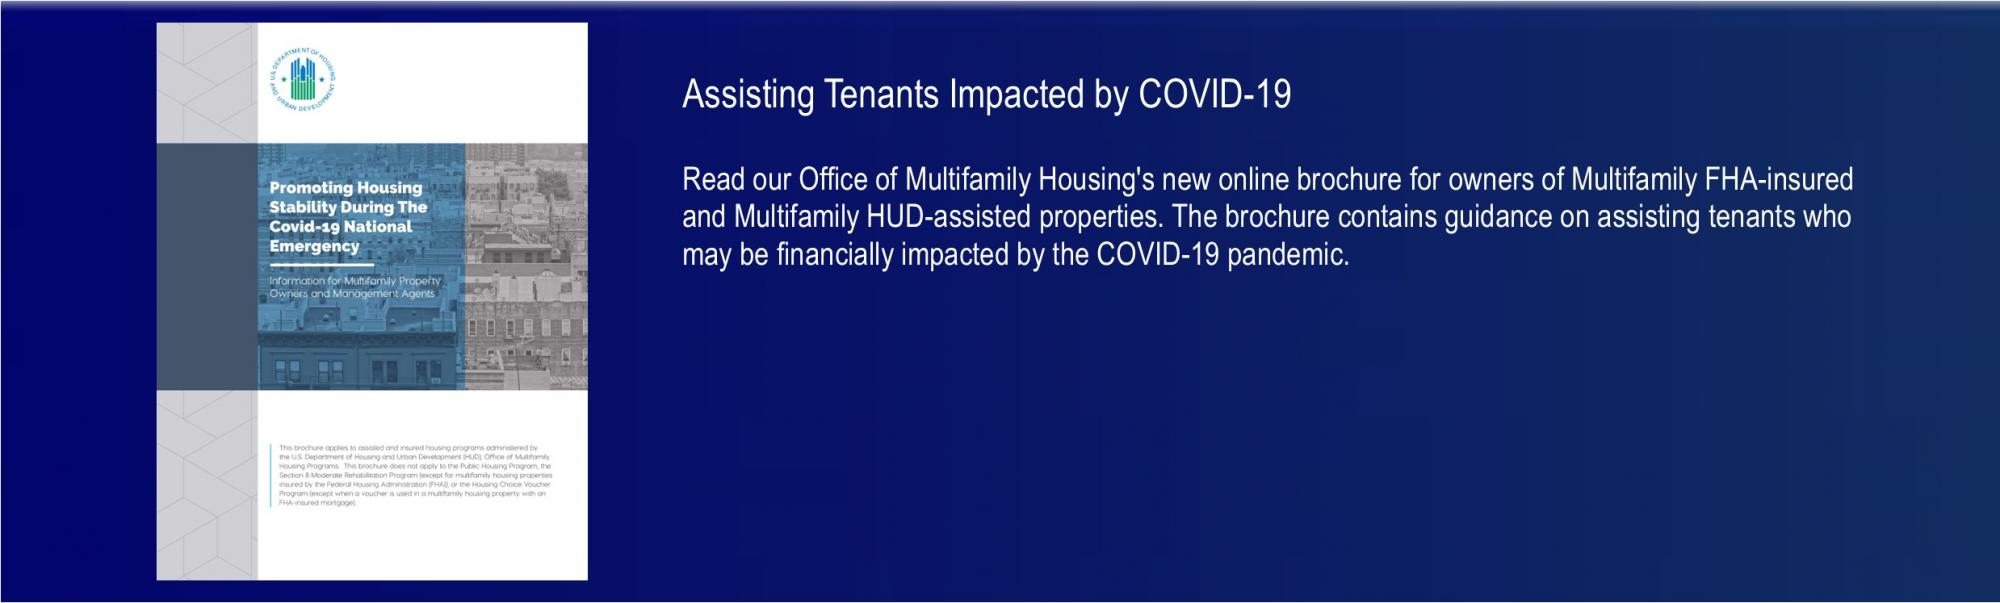 [Assisting Tenants Impacted by COVID-19]. HUD Photo